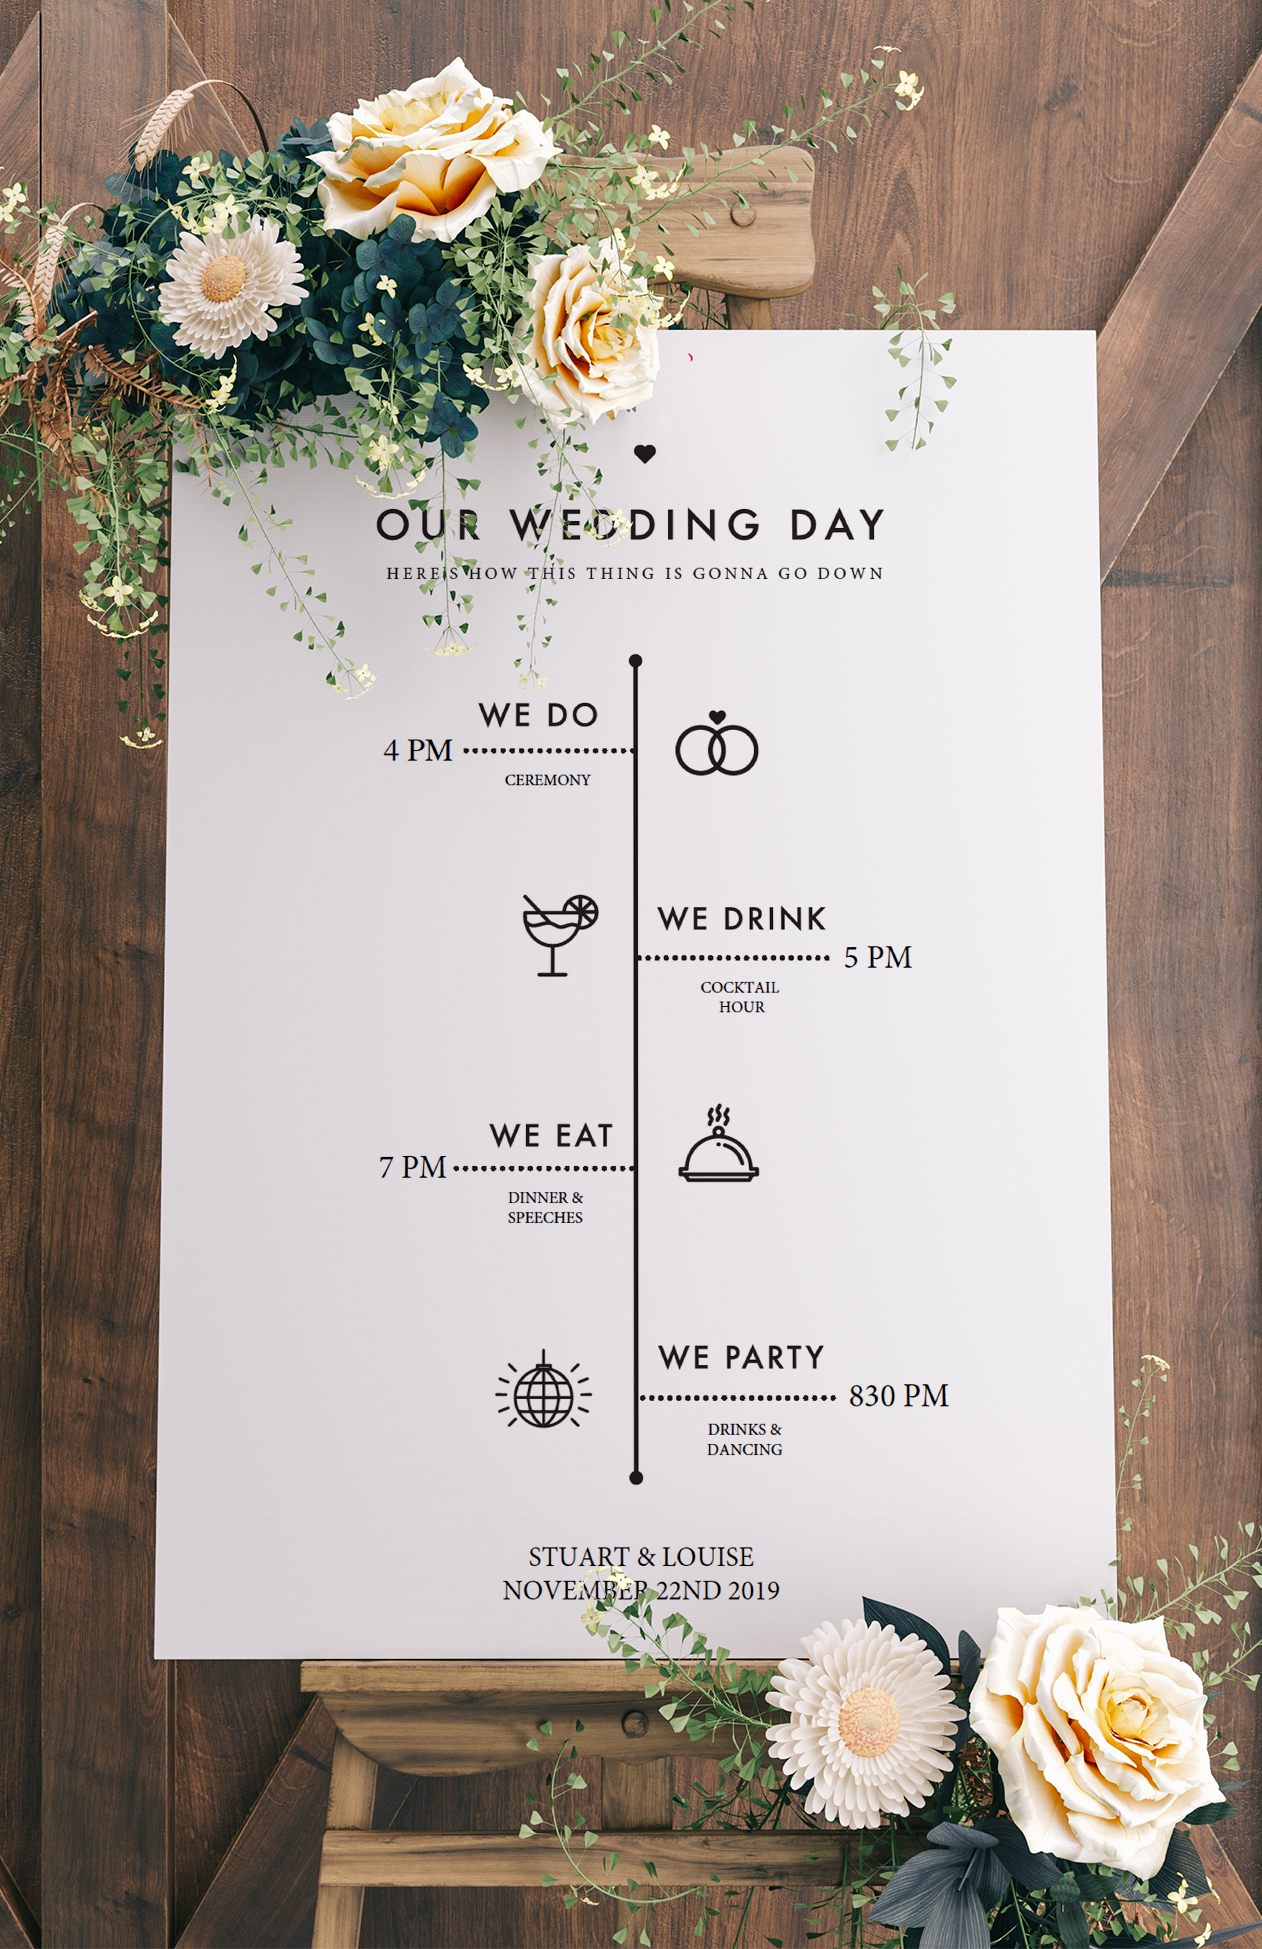 Printable Wedding Sign Template – Wedding Program Sign #weddingideas #wedding id… – Boda fotos